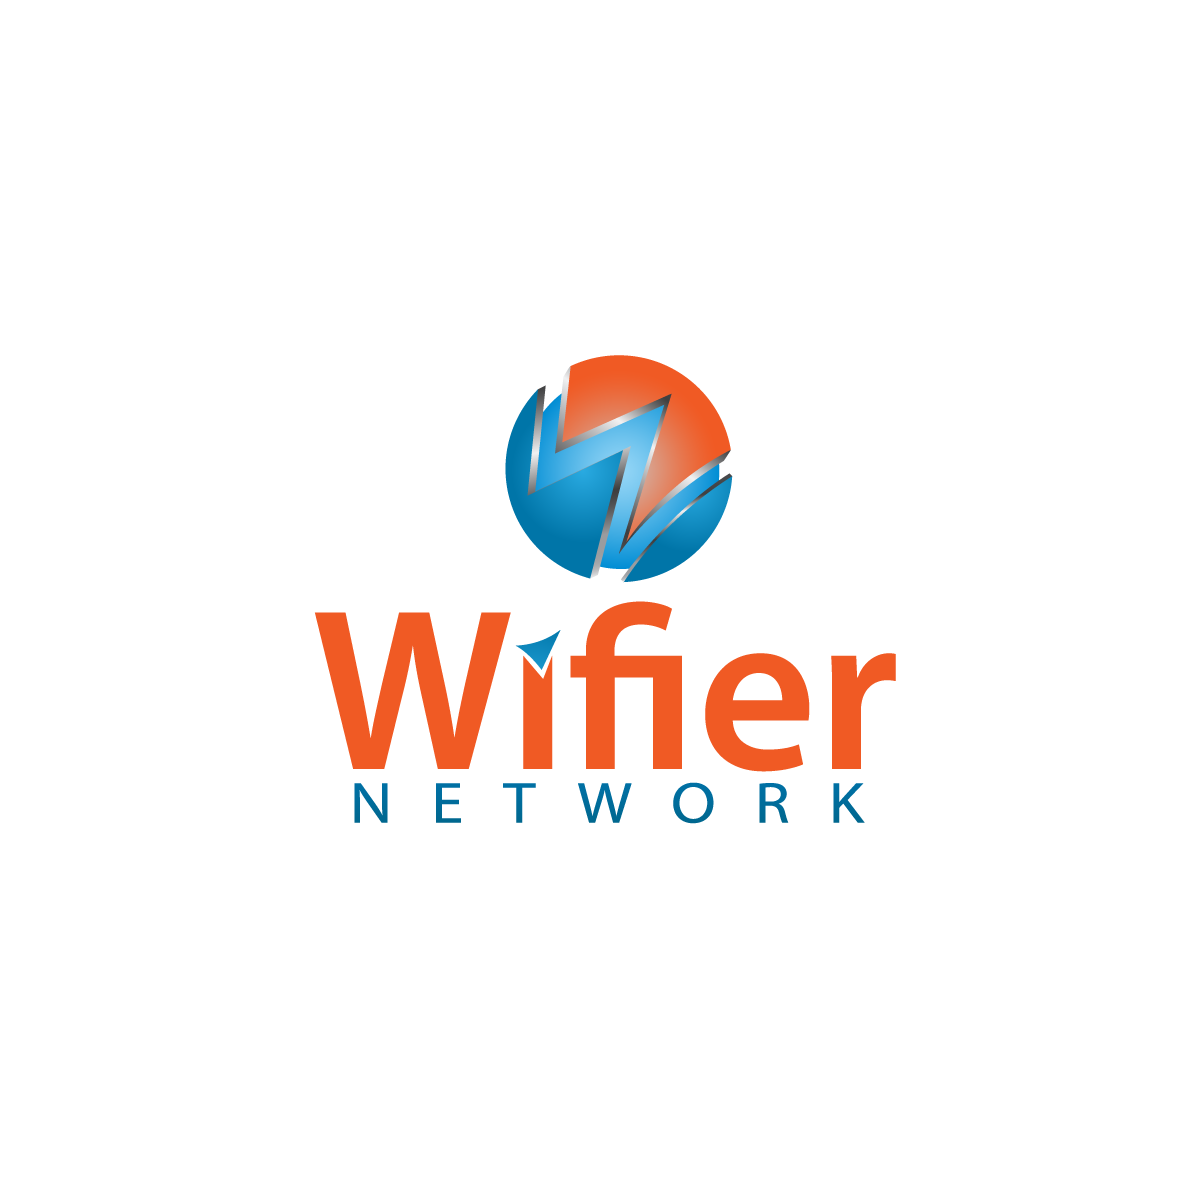 Logo Design by rockin - Entry No. 48 in the Logo Design Contest New Logo Design for Wifier Network.